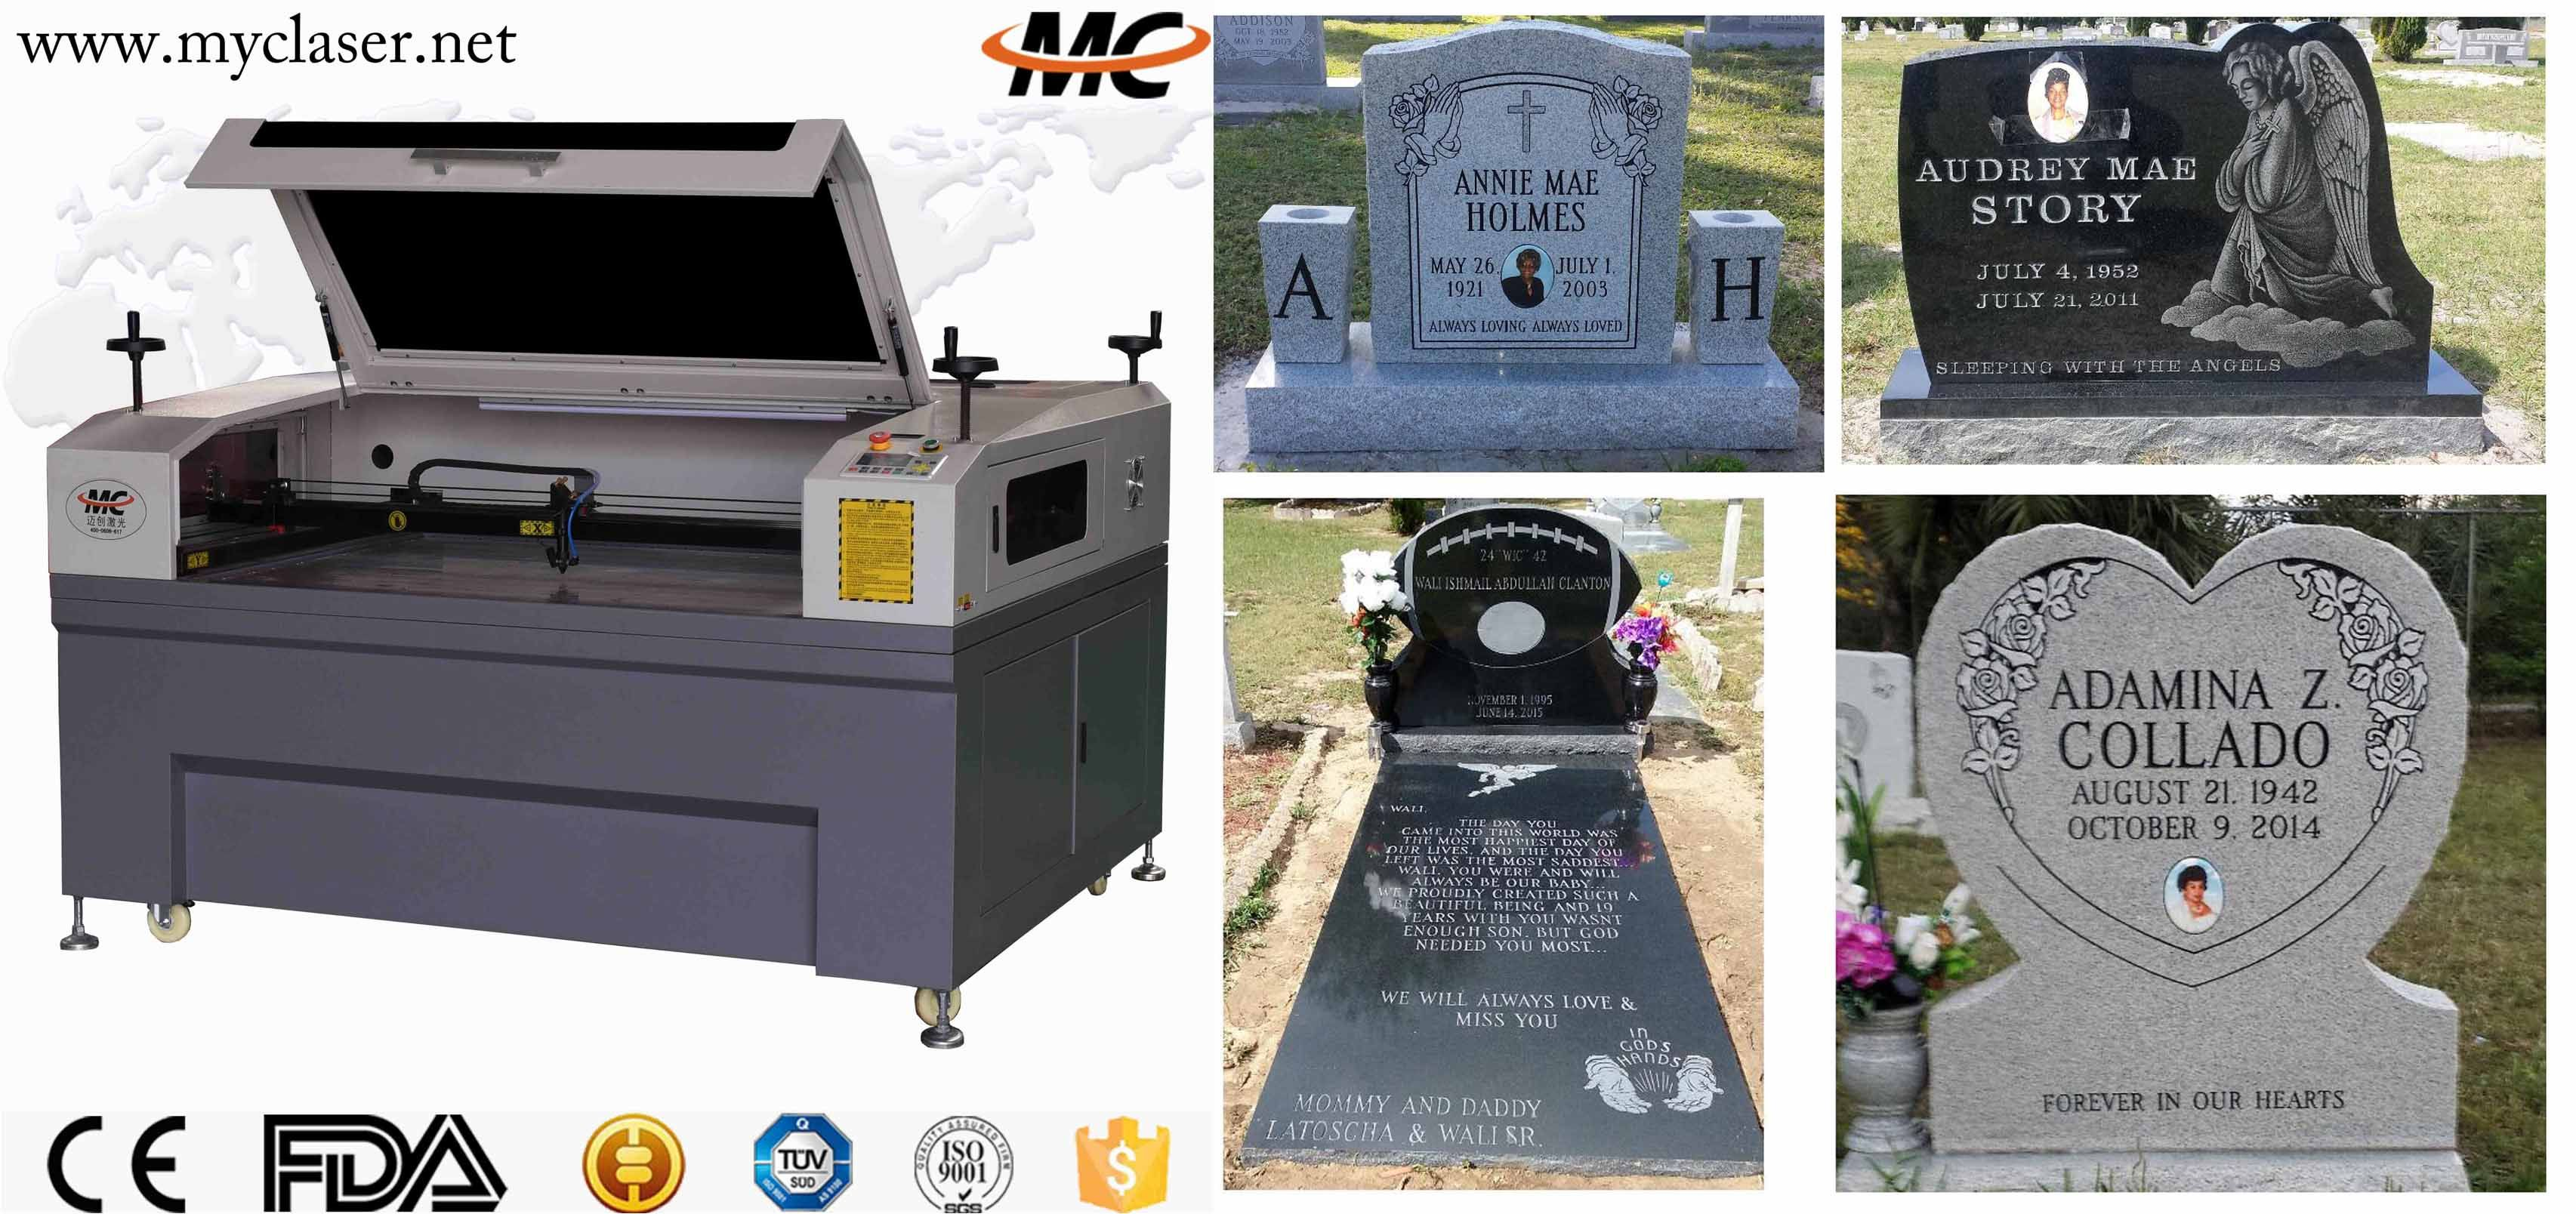 Mc1310stone Laser Engraving Machine Specialize In Monuments Mausoleums Granite Markers And Other Stone F Laser Machine Laser Engraving Laser Engraving Machine